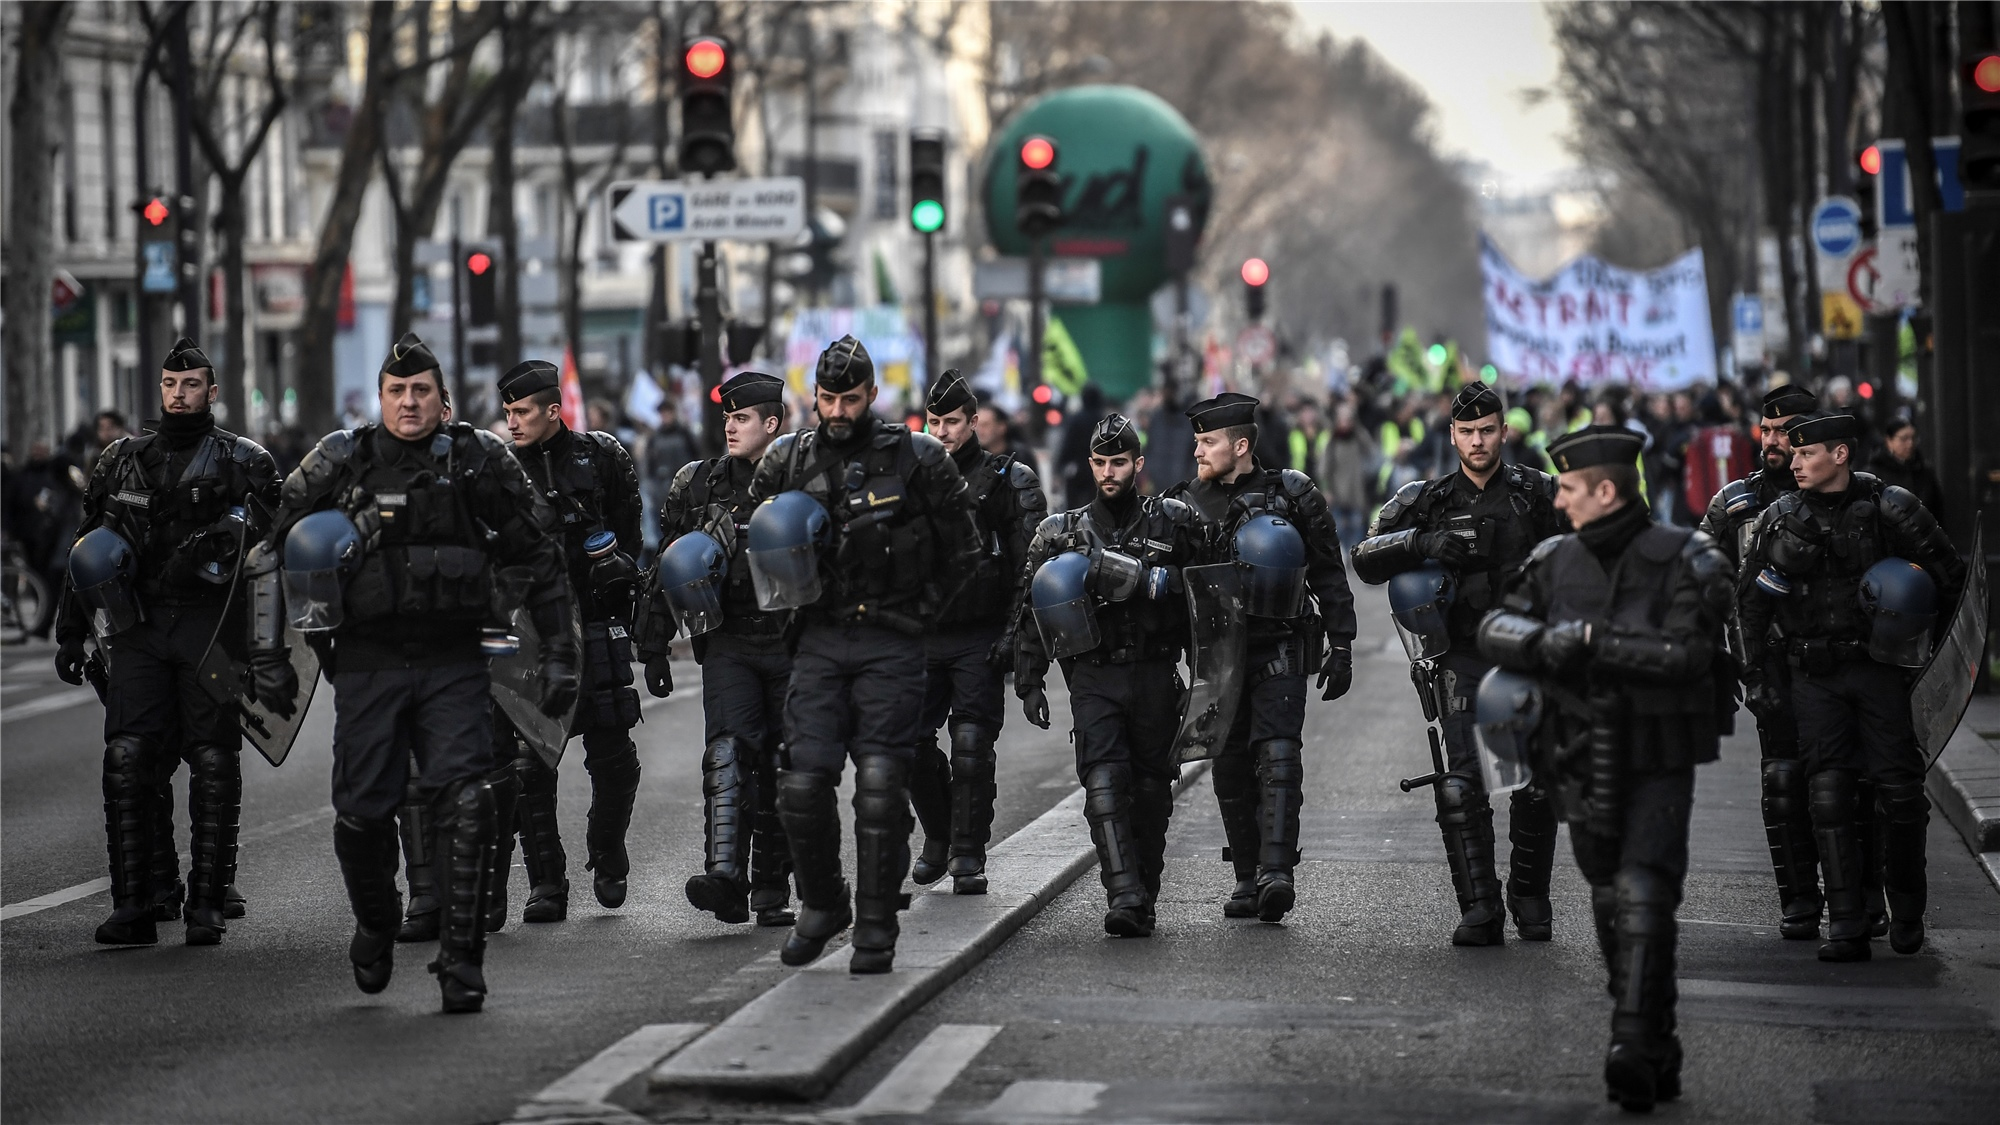 France strikes continue over Christmas period